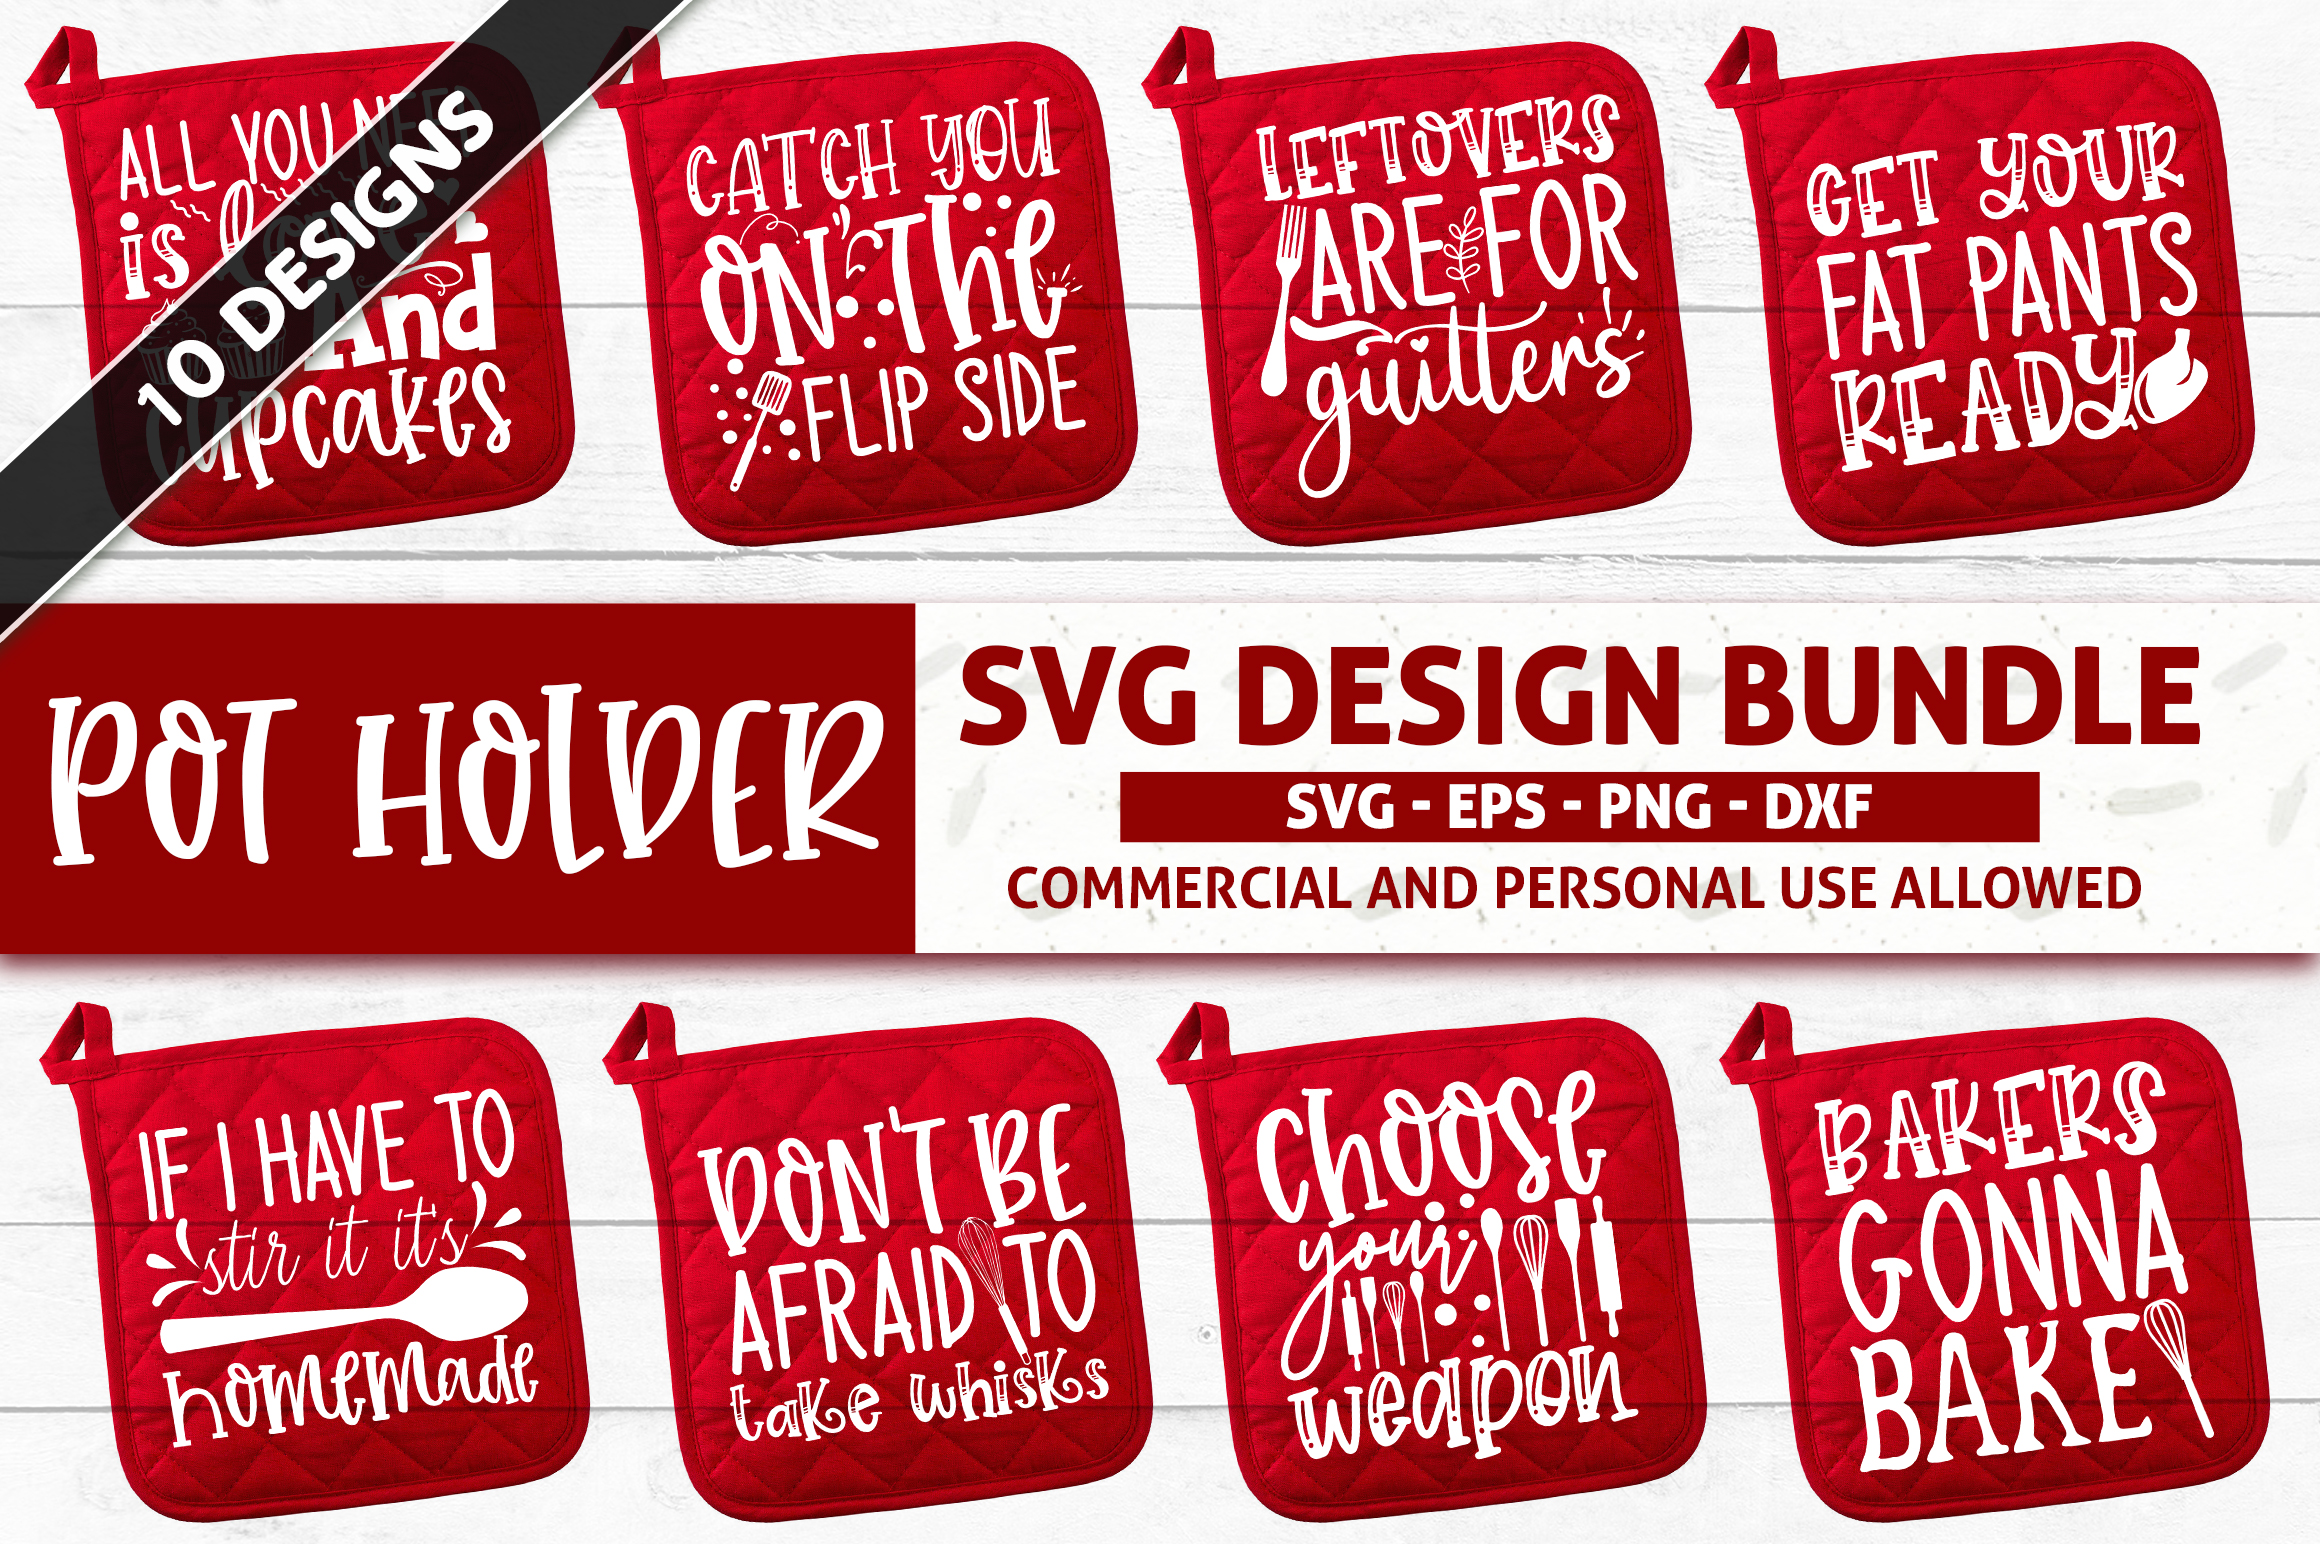 510 SVG DESIGN THE MIGHTY BUNDLE |32 DIFFERENT BUNDLES example image 8